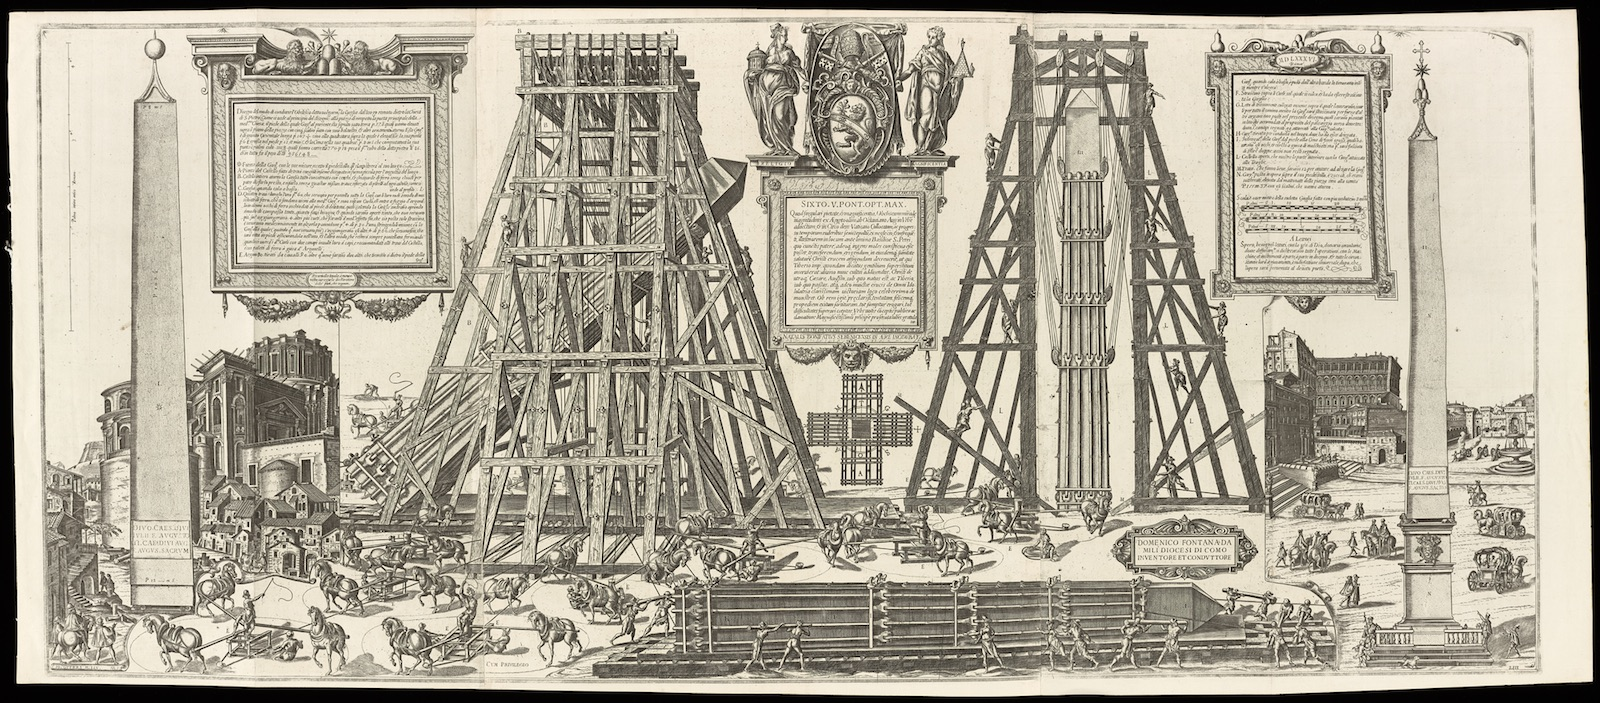 Engraving showing workers using wooden scaffolding to erect an ancient Egyptian obelisk